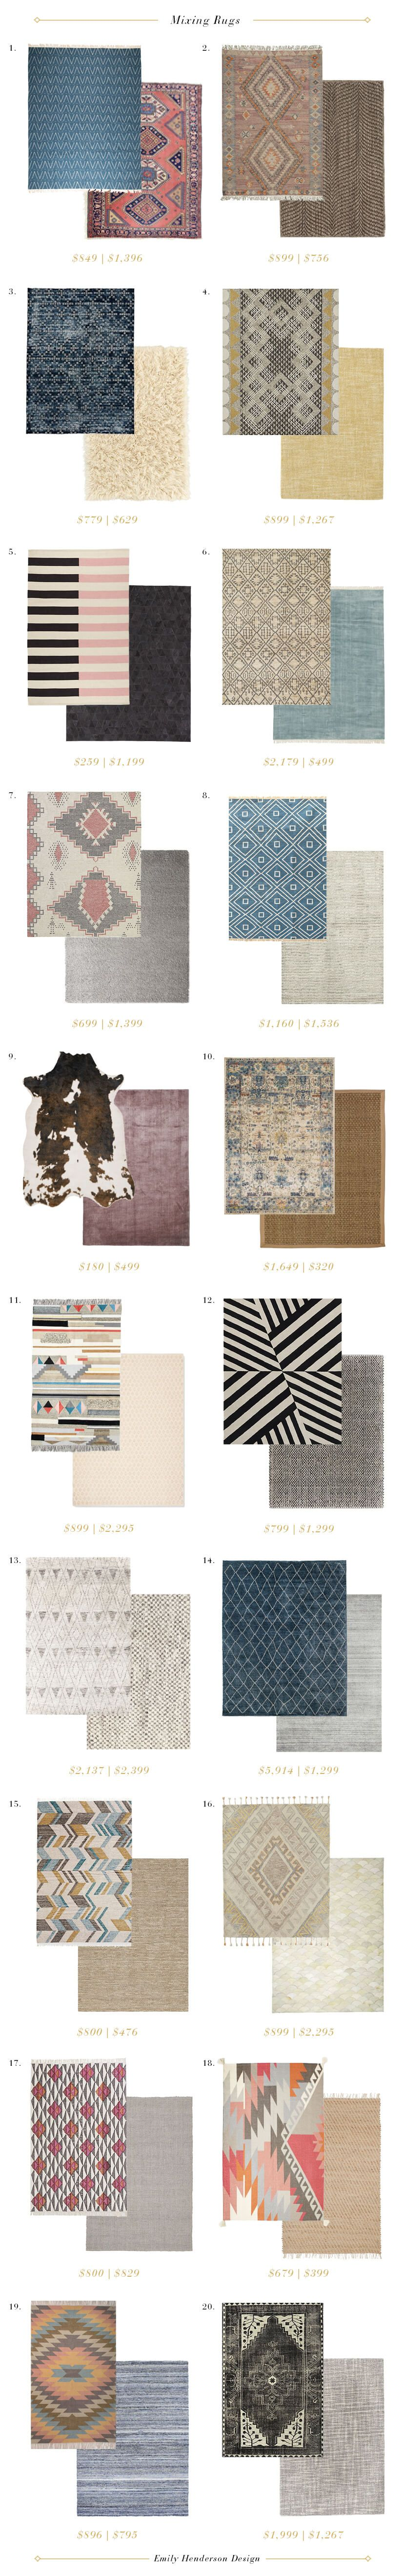 5 Ways To Coordinate Area Rugs In An Open Floor Plan With Images